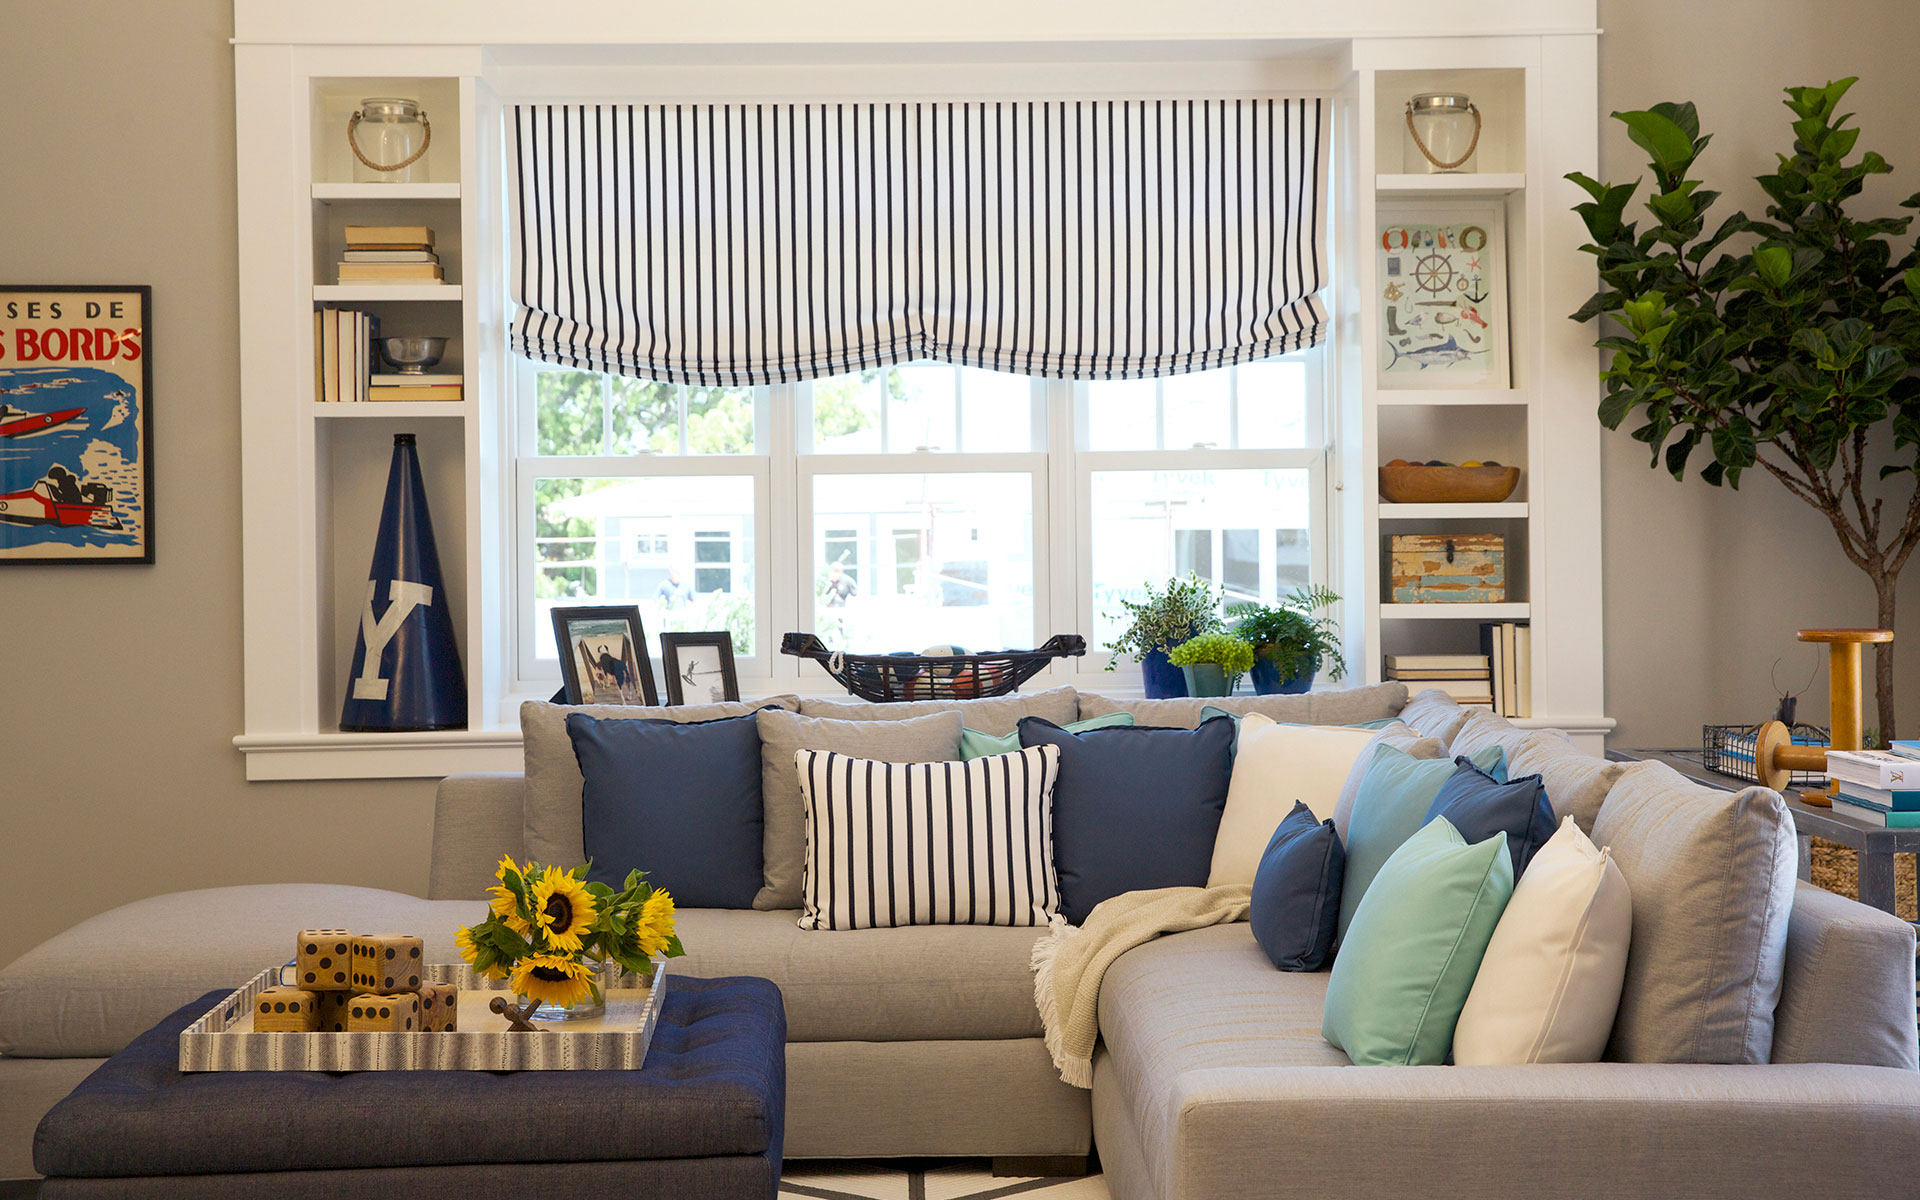 Bringing Outdoor Fabric Inside with Sunbrella - DelmarvaLife